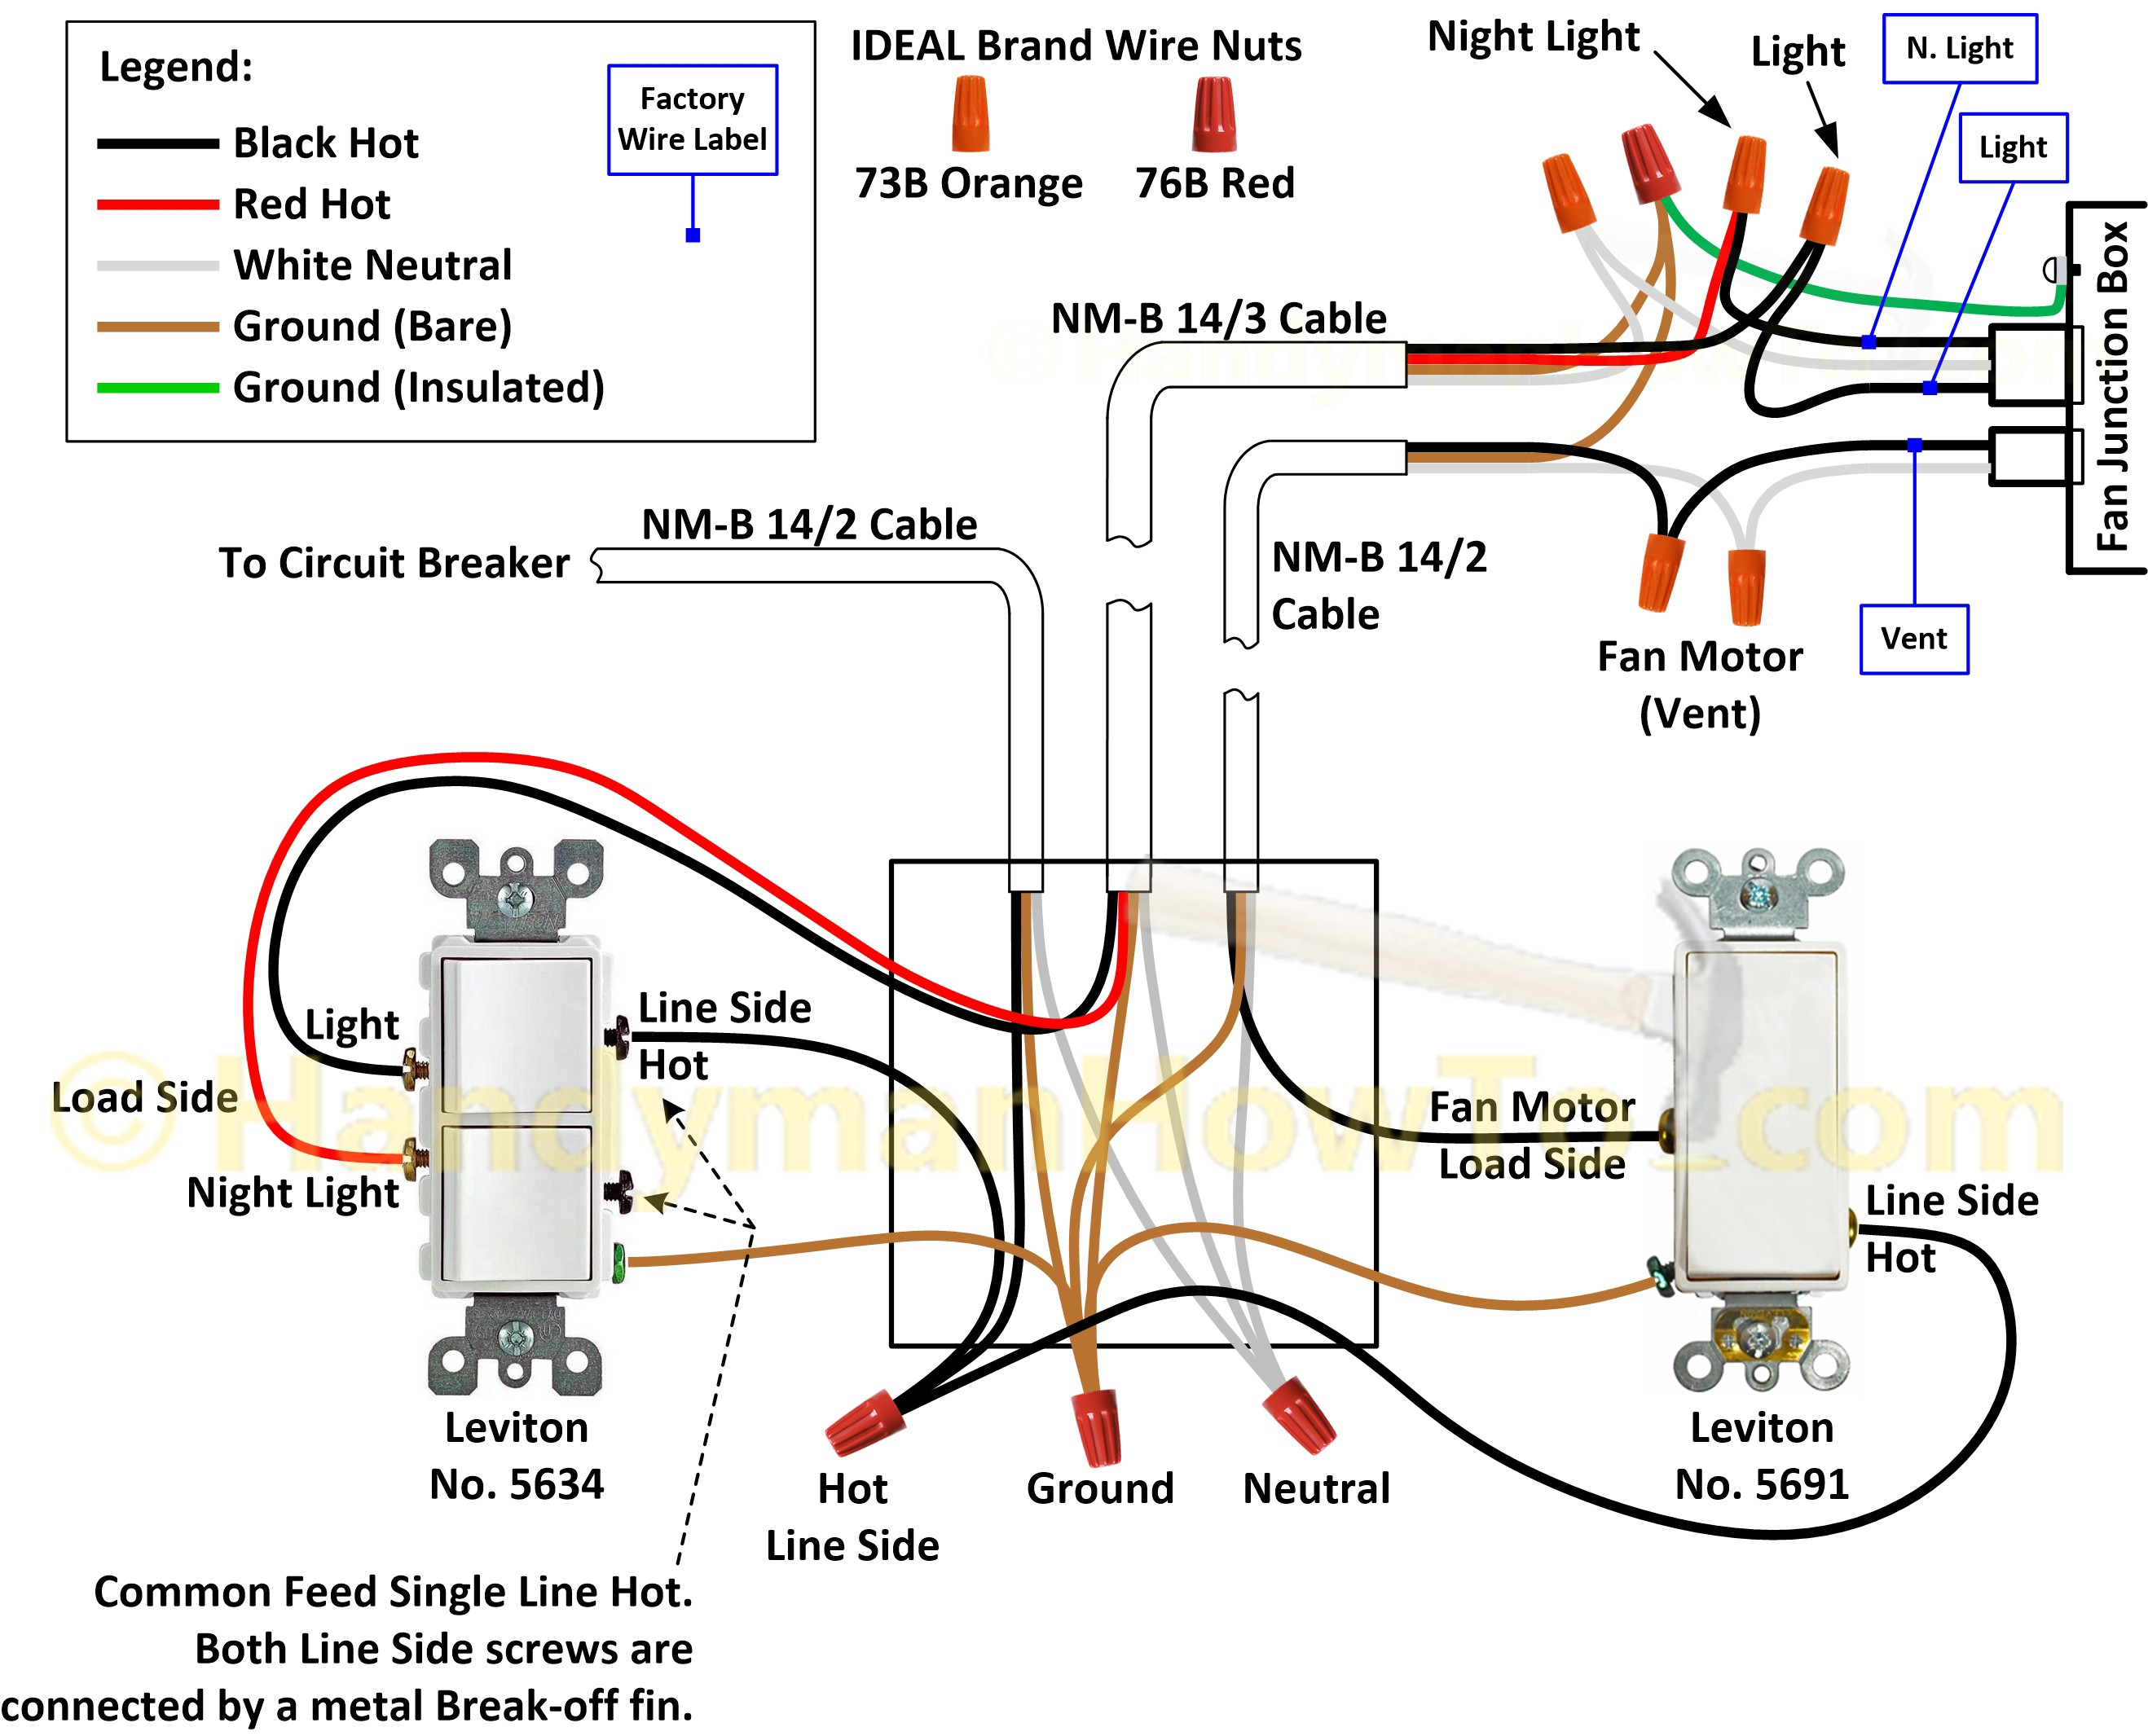 Headlight Switch Wiring Diagram Wiring Diagram for Ceiling Fan Light Switch Lights Coachedby Of Headlight Switch Wiring Diagram